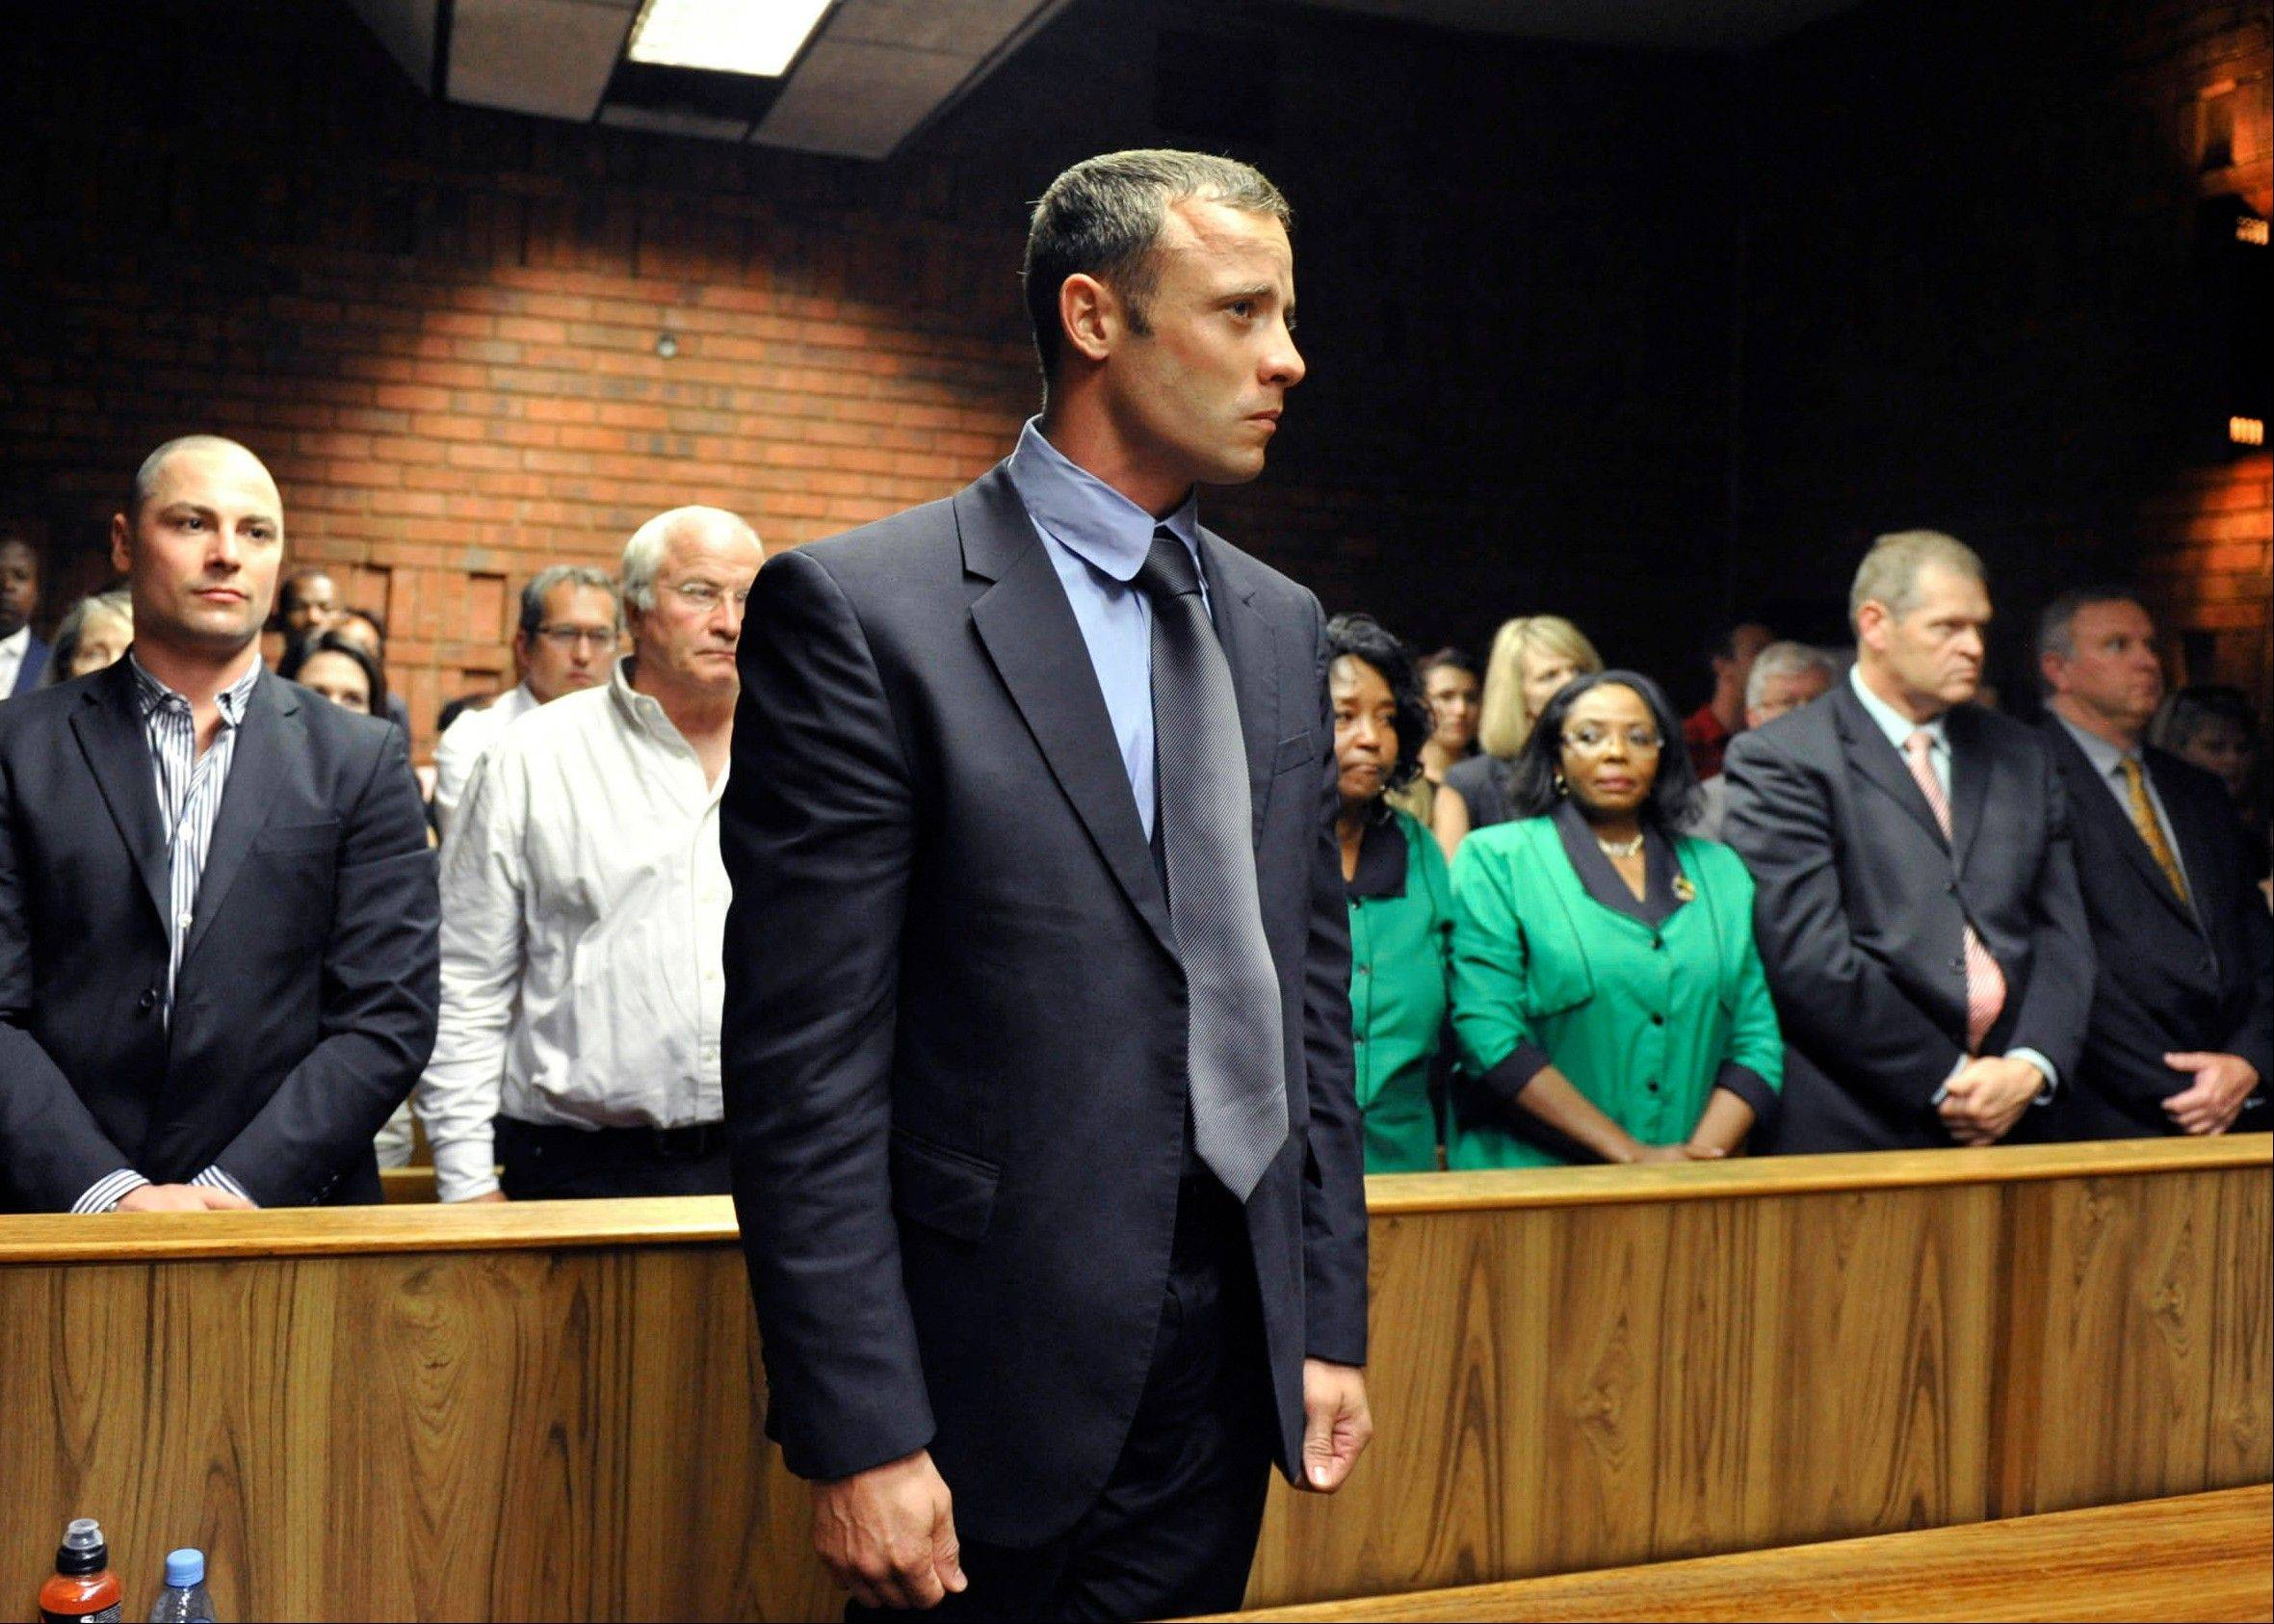 Pistorius: Thought lover an intruder in shooting